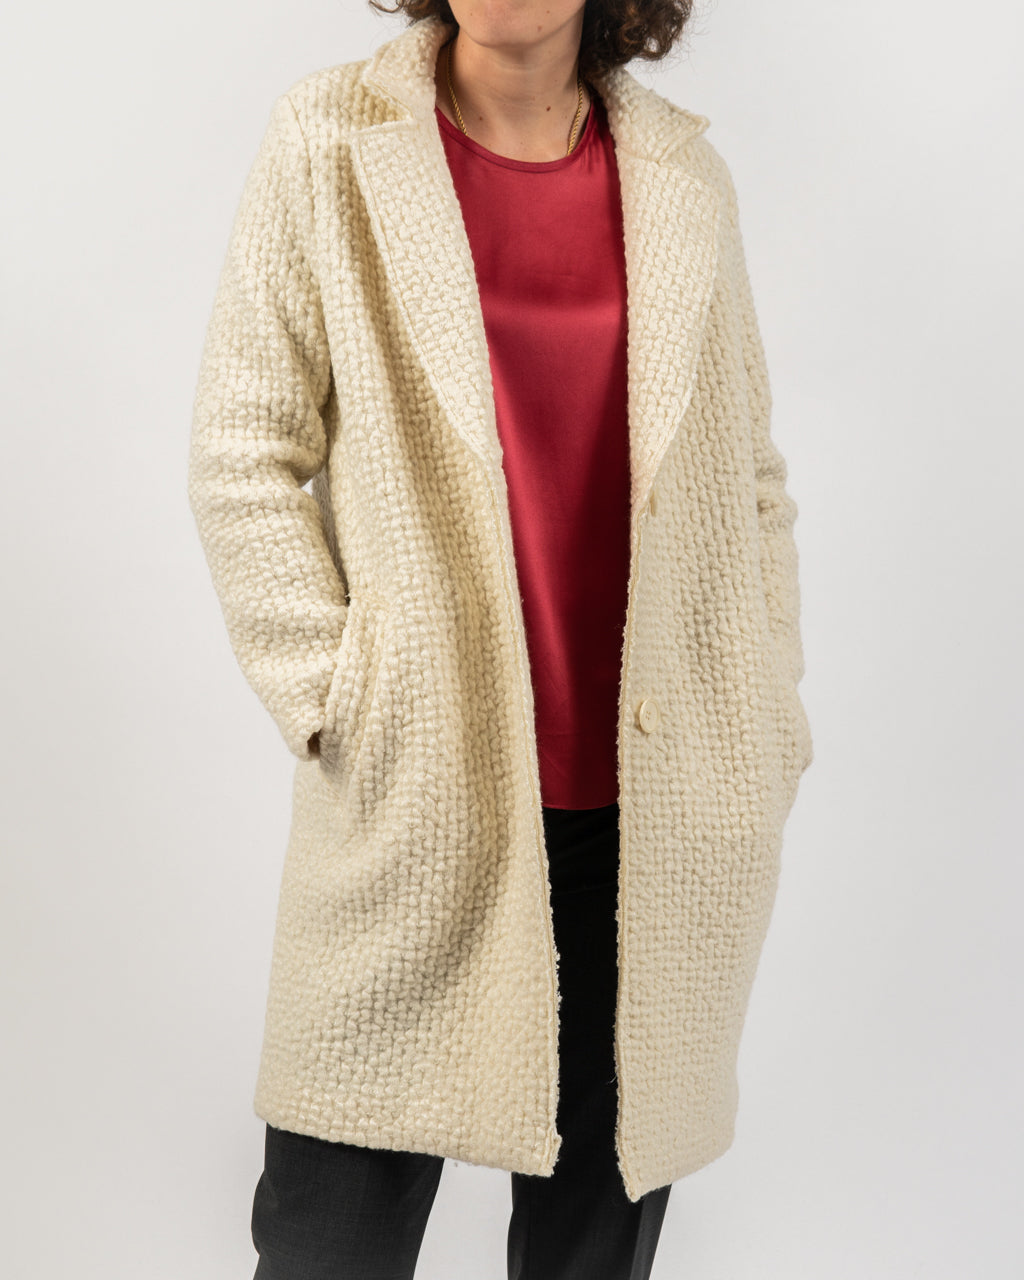 Nubby Cream Wool Coat